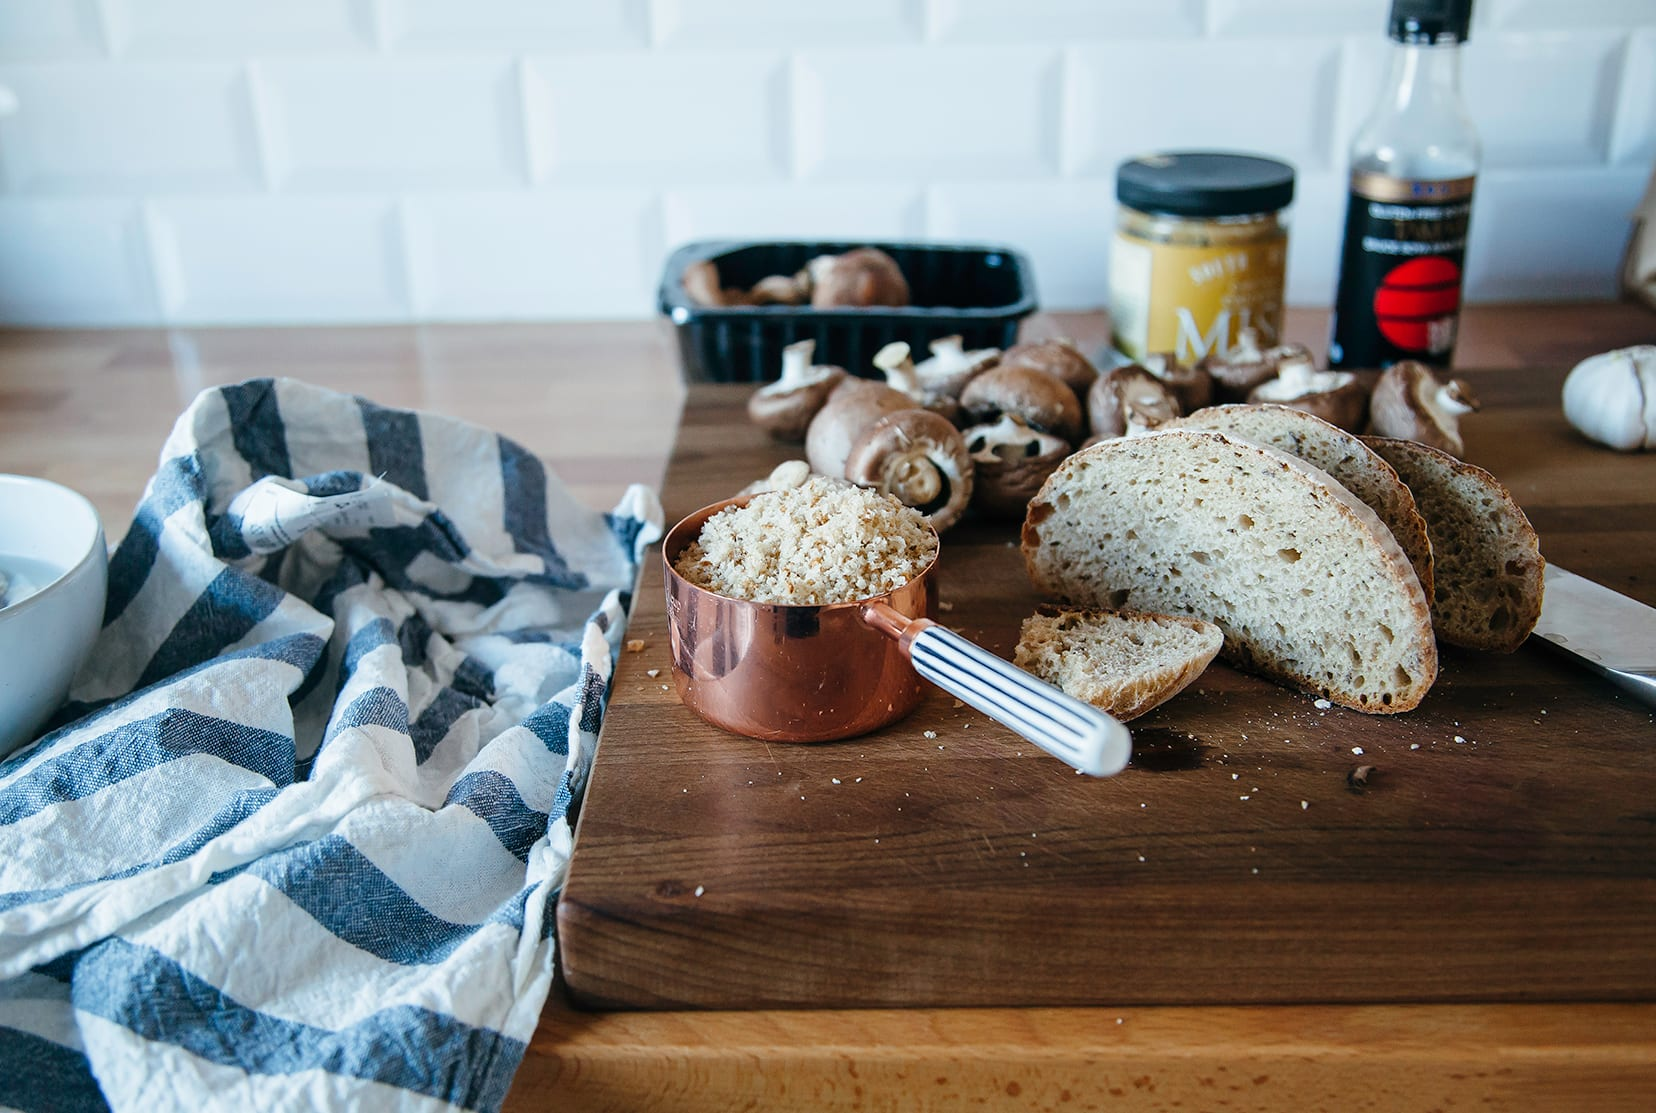 Image shows a cutting board with bread, mushrooms, and condiments on top.